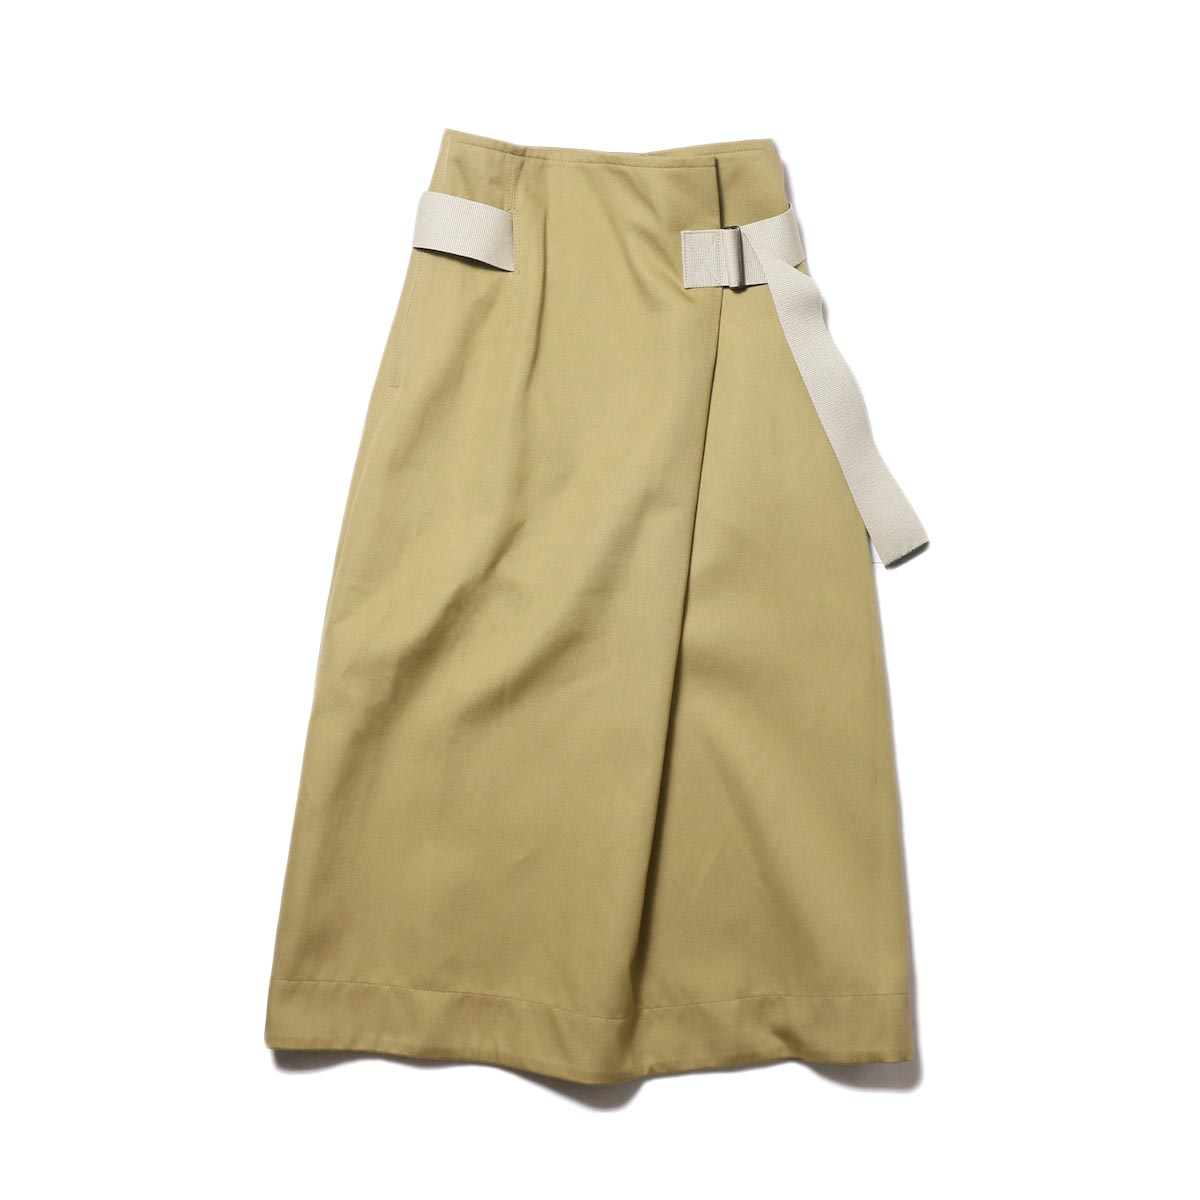 YLEVE / ELS COTTON DOUBLE CLOTH SKIRT (khaki)